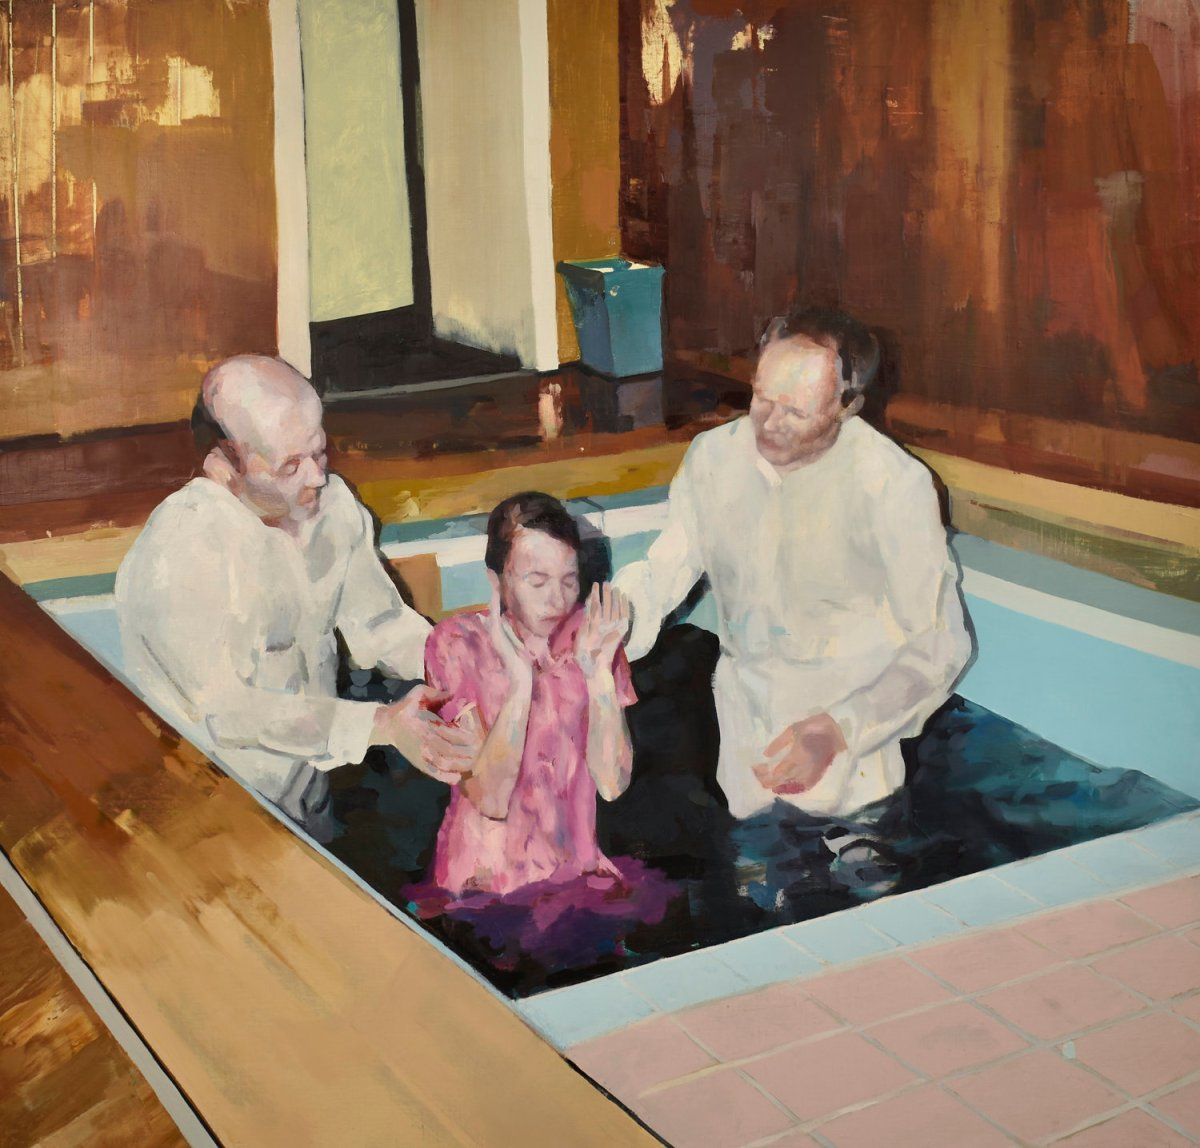 Portrait of a baptism into an indoor pool of a young woman.